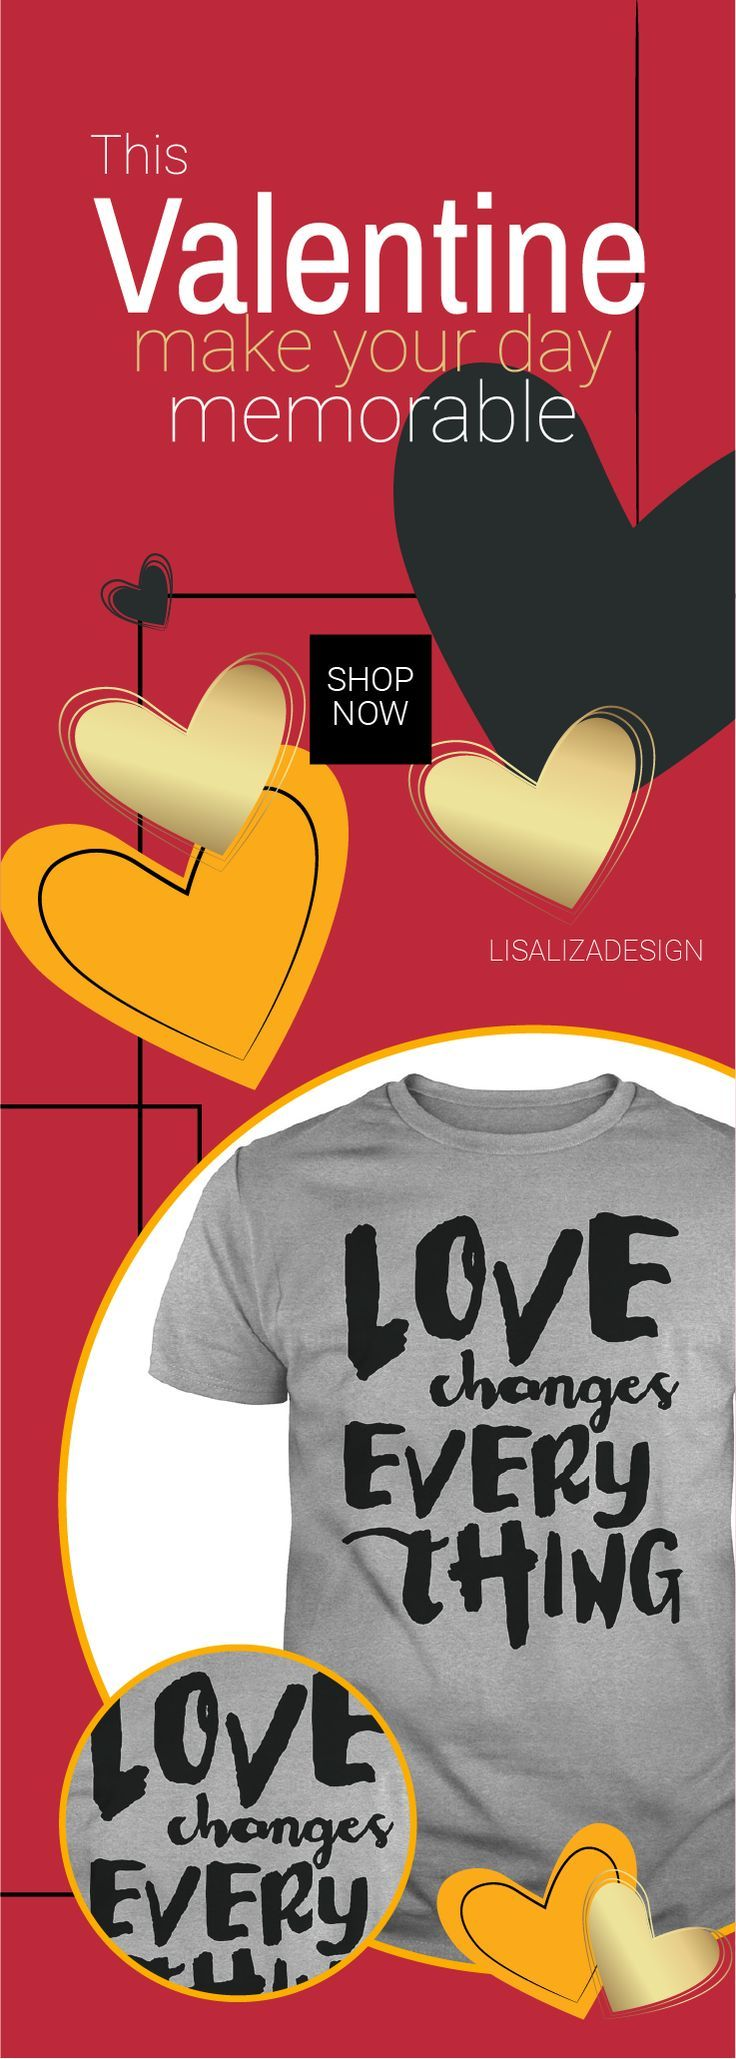 Love Changes Everything valentine day.  Sunfrog Women/ Men  T Shirt / Hoodies  Love is in the air . Be My Valentine.  Shop for Darling Valentine TShirt from here.     #valentine #valentinesday #valentinegift #lover #couple #inlove #Forhim #valentineforhim #forher #valentineday #sunfrog #lisaliza #giftideas #present #ideas #february #love #boyfriend #girlfriend